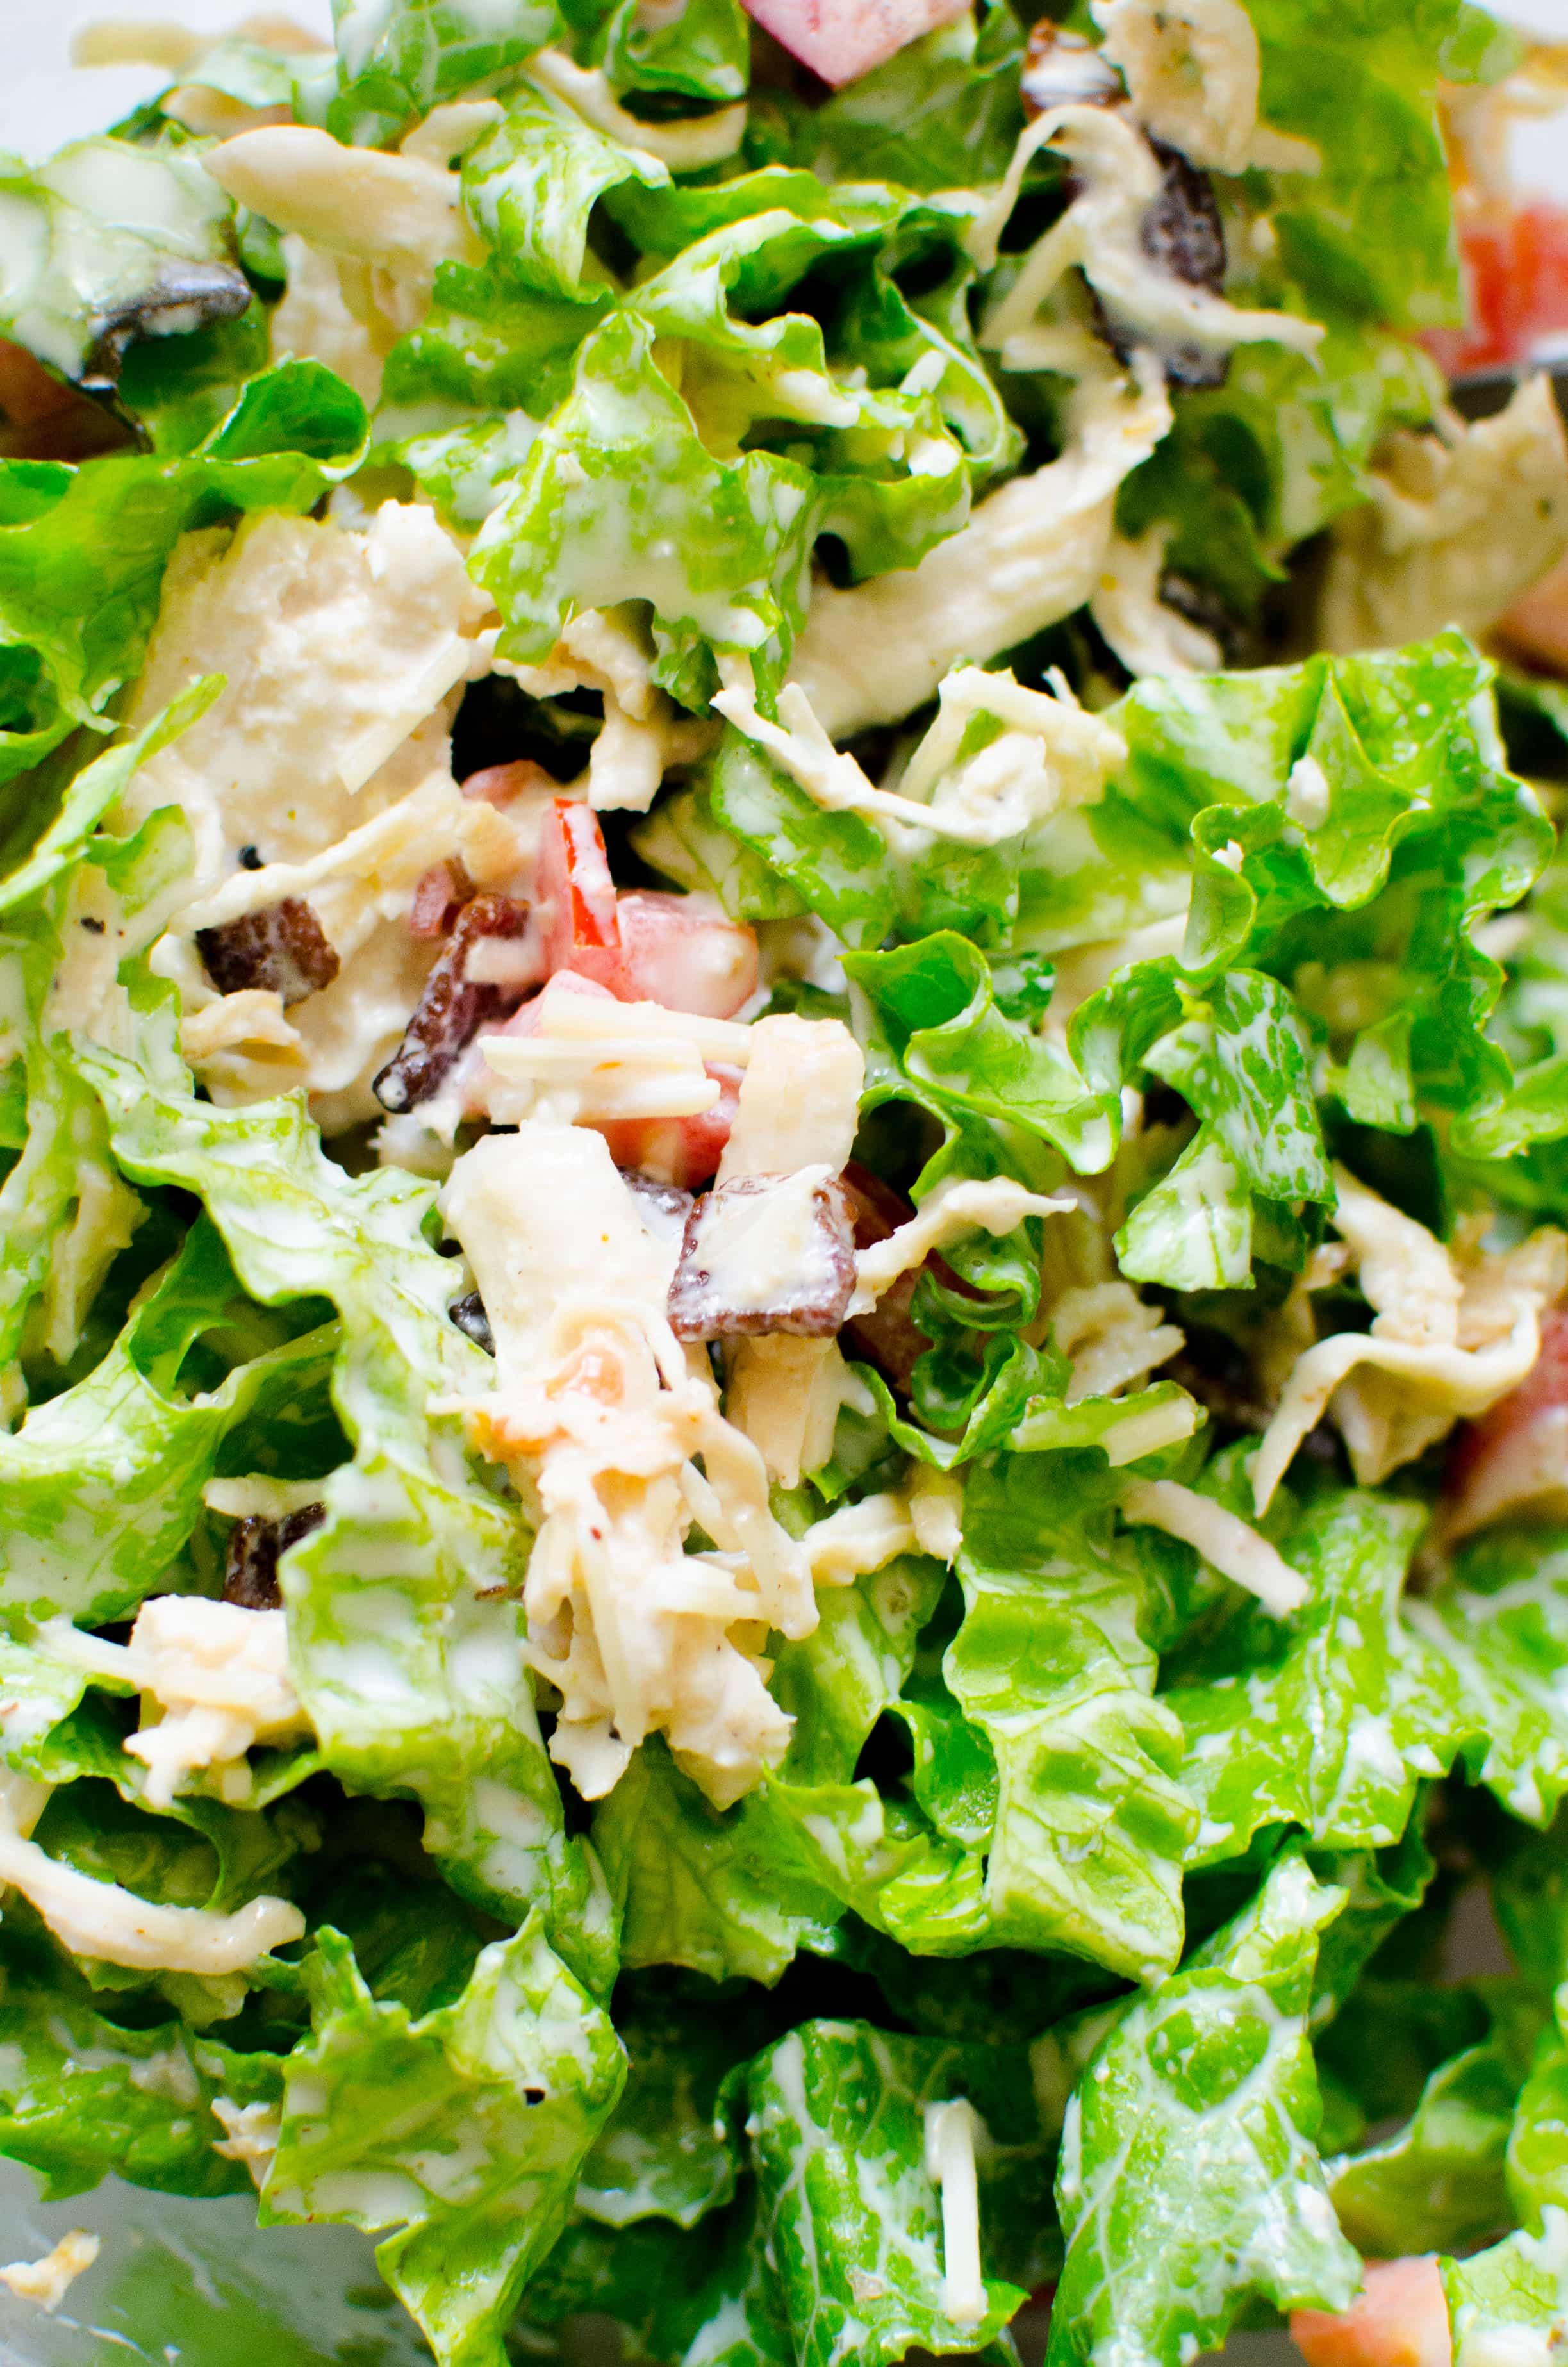 Lettuce, chicken, bacon, tomatoes, cheese tossed in a homemade creamy mayo dressing.